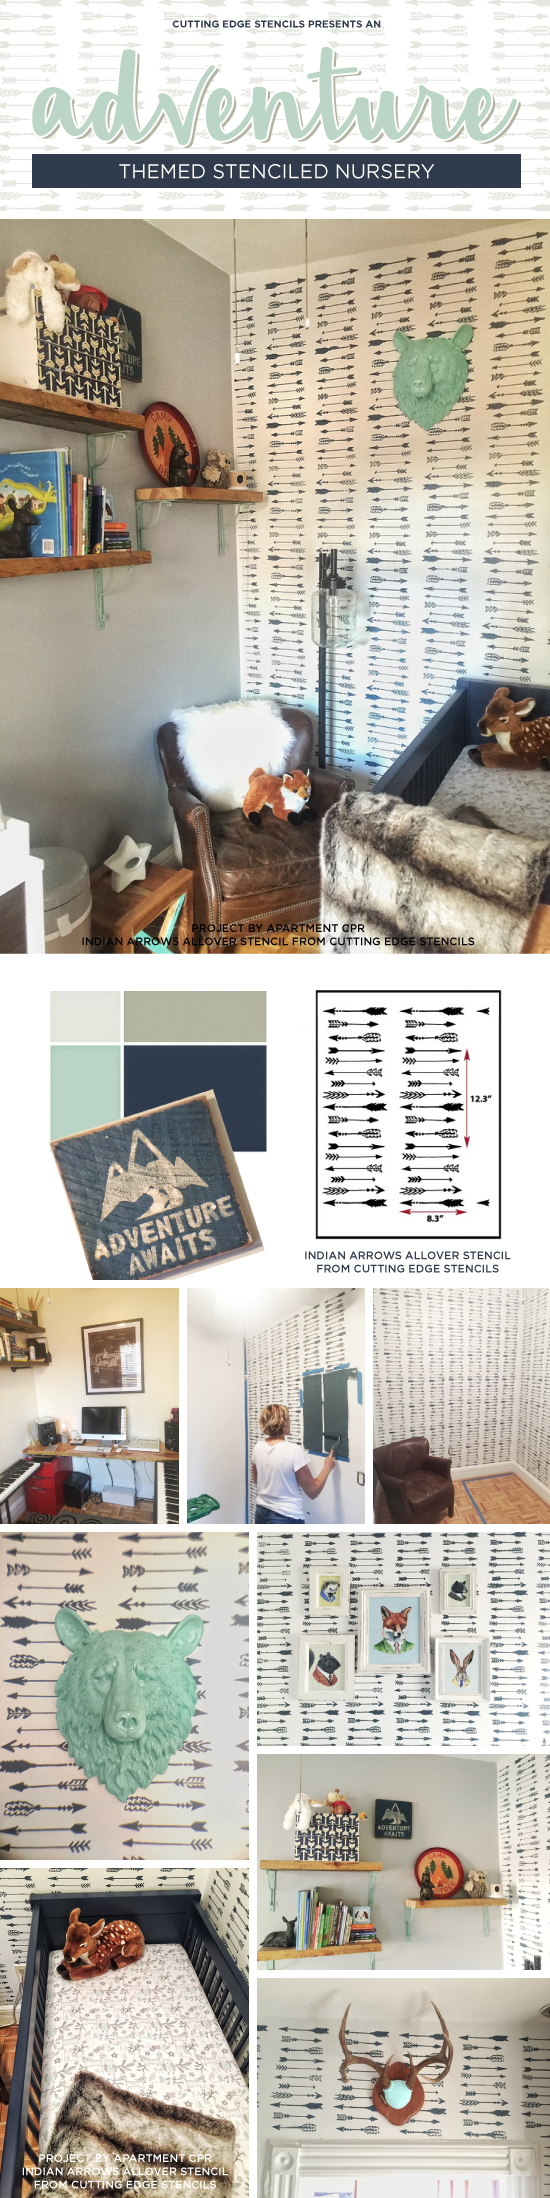 Cutting Edge Stencils shares a DIY adventure themed nursery that was stenciled with the Indian Arrow Allover wall pattern. http://www.cuttingedgestencils.com/indian-arrows-stencil-pattern-for-walls.html